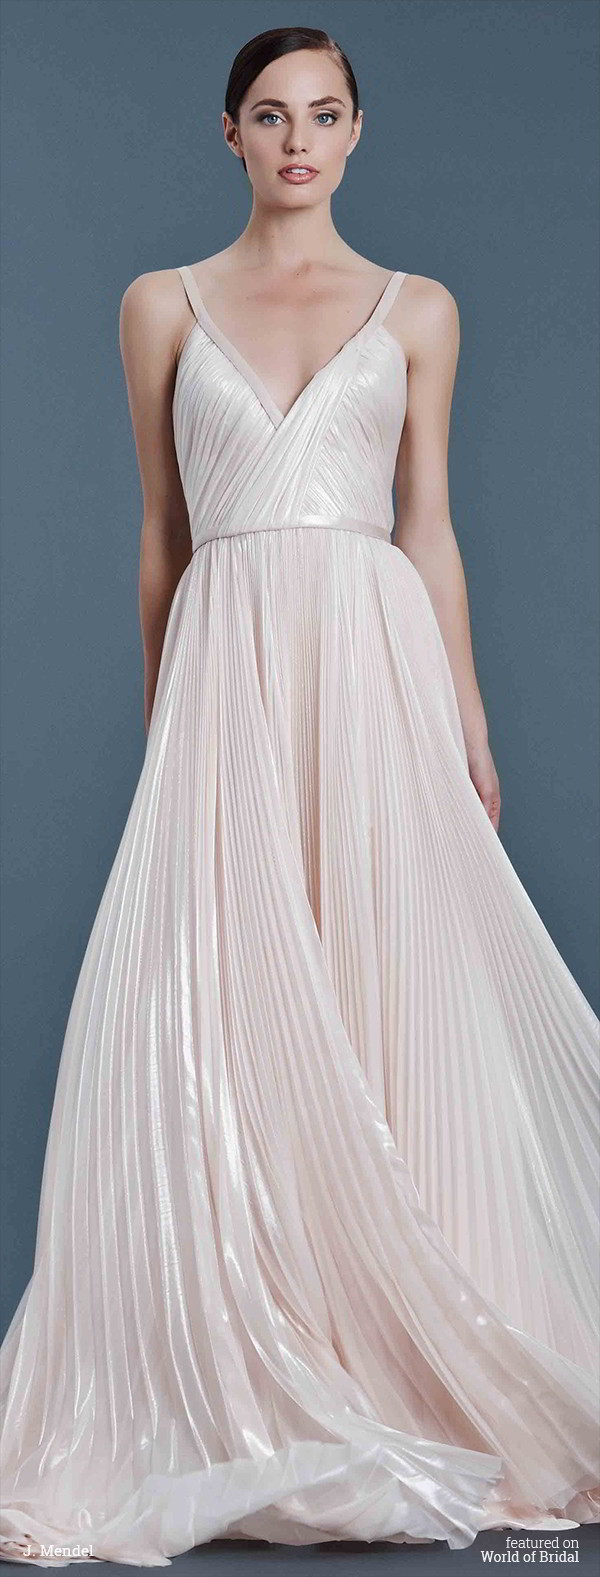 J. Mendel Fall 2016 Wedding Dresses - World of Bridal